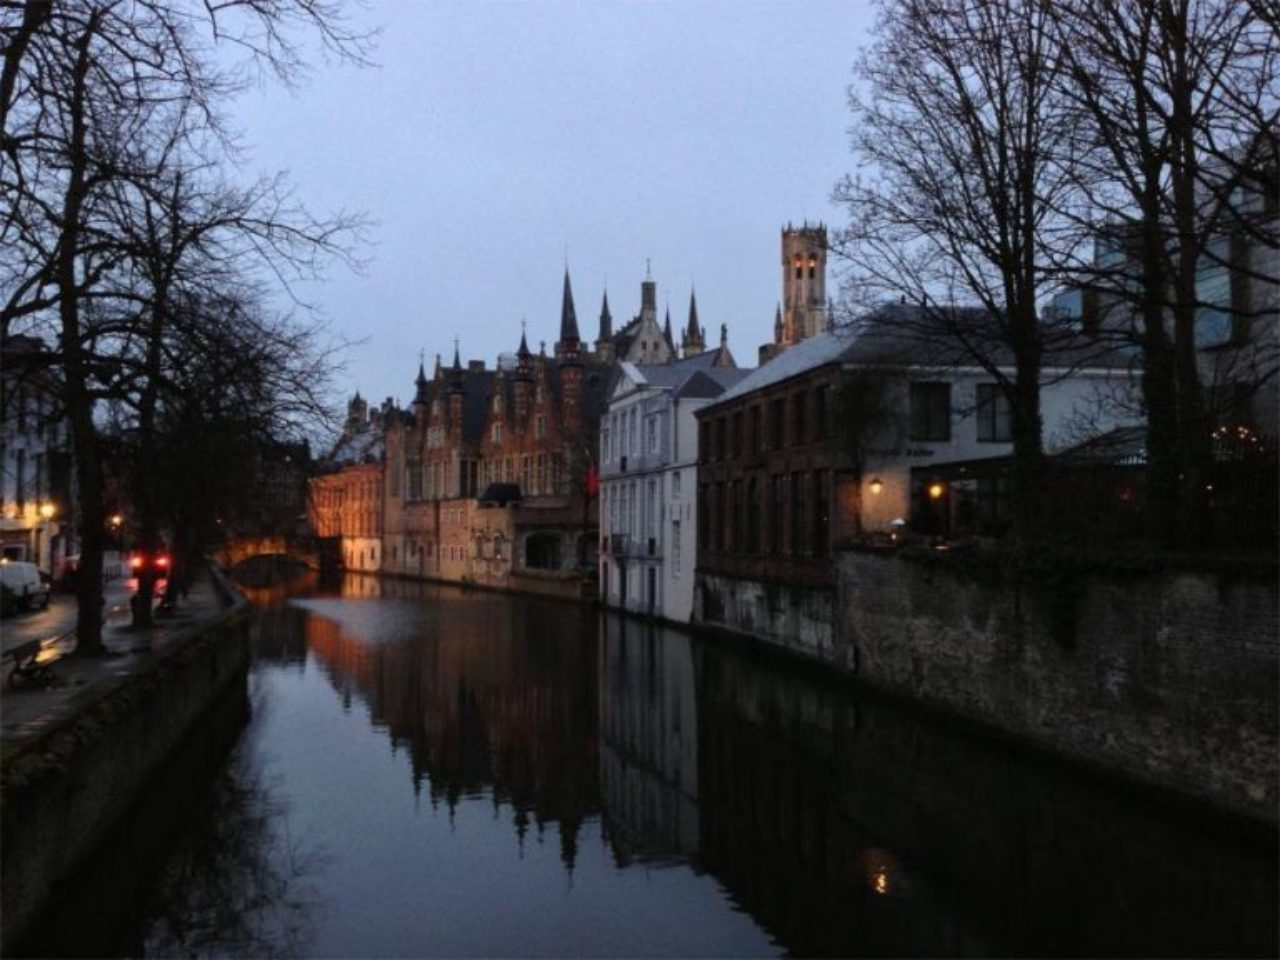 Photo of Bruges, Belgium by Kellen Krause (setting of the 2008 film In Bruges)